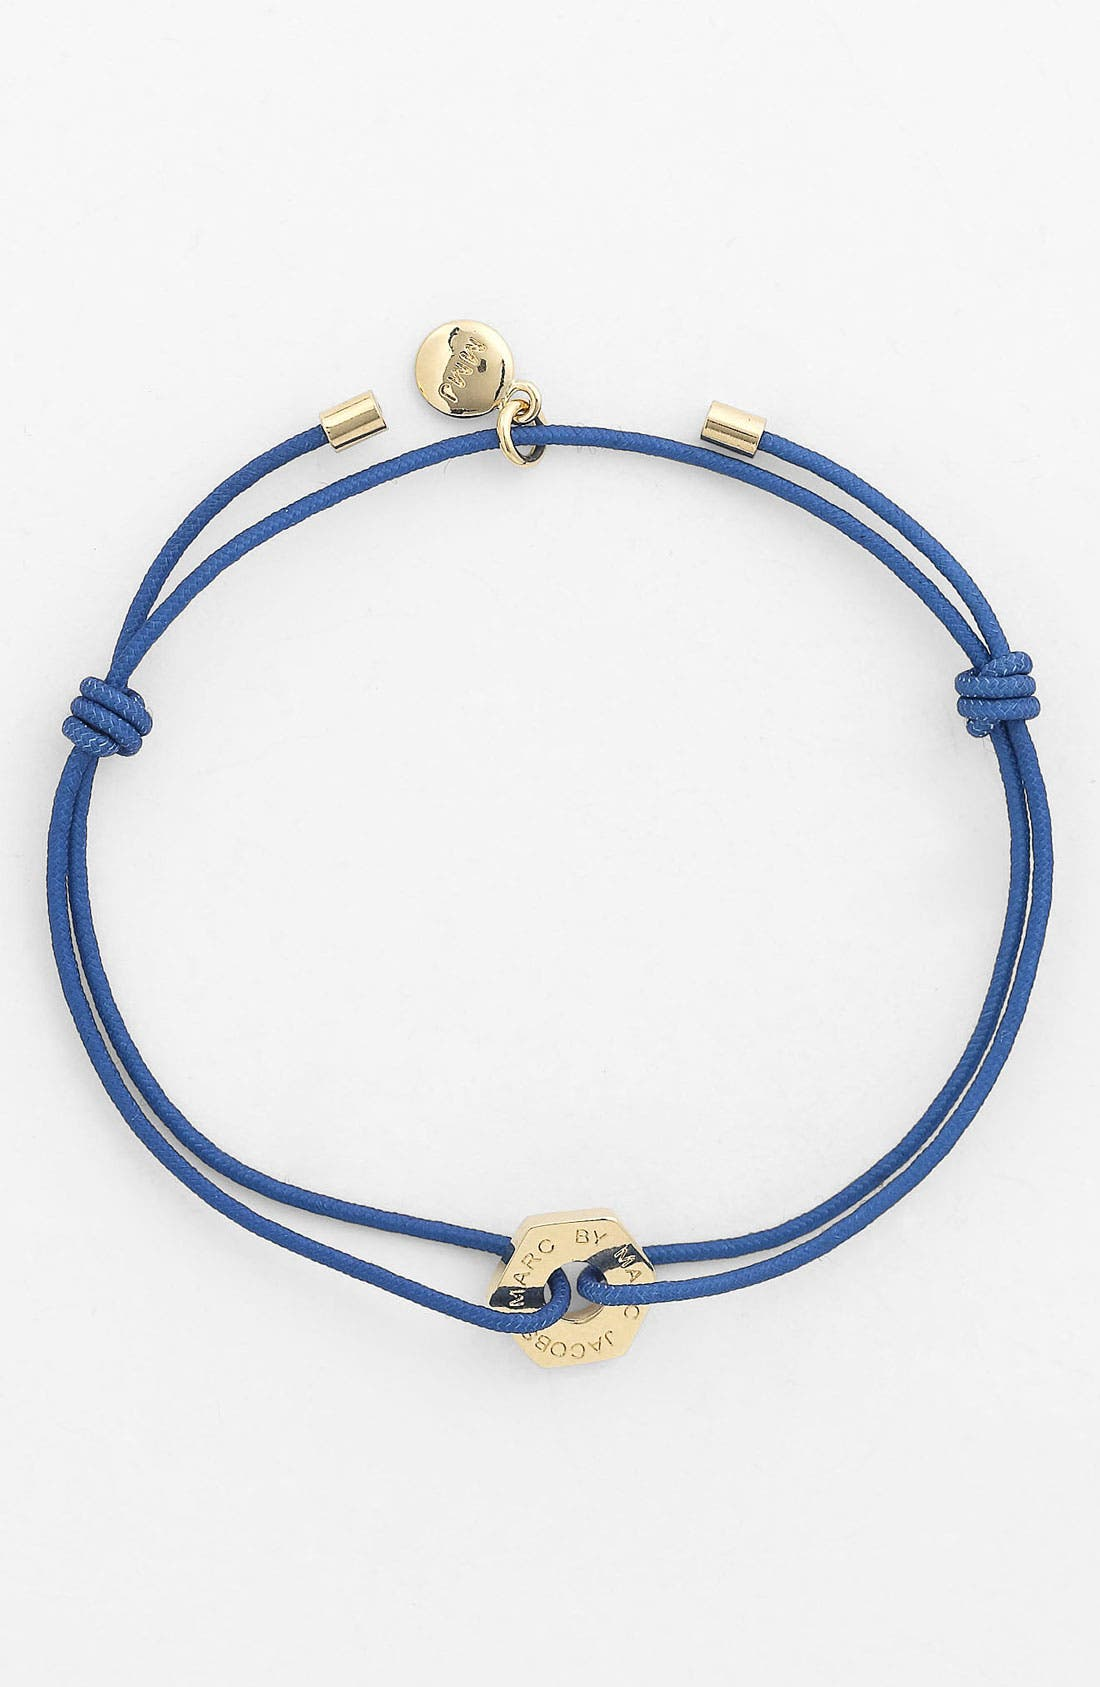 Alternate Image 1 Selected - MARC BY MARC JACOBS 'Bolts' Friendship Bracelet